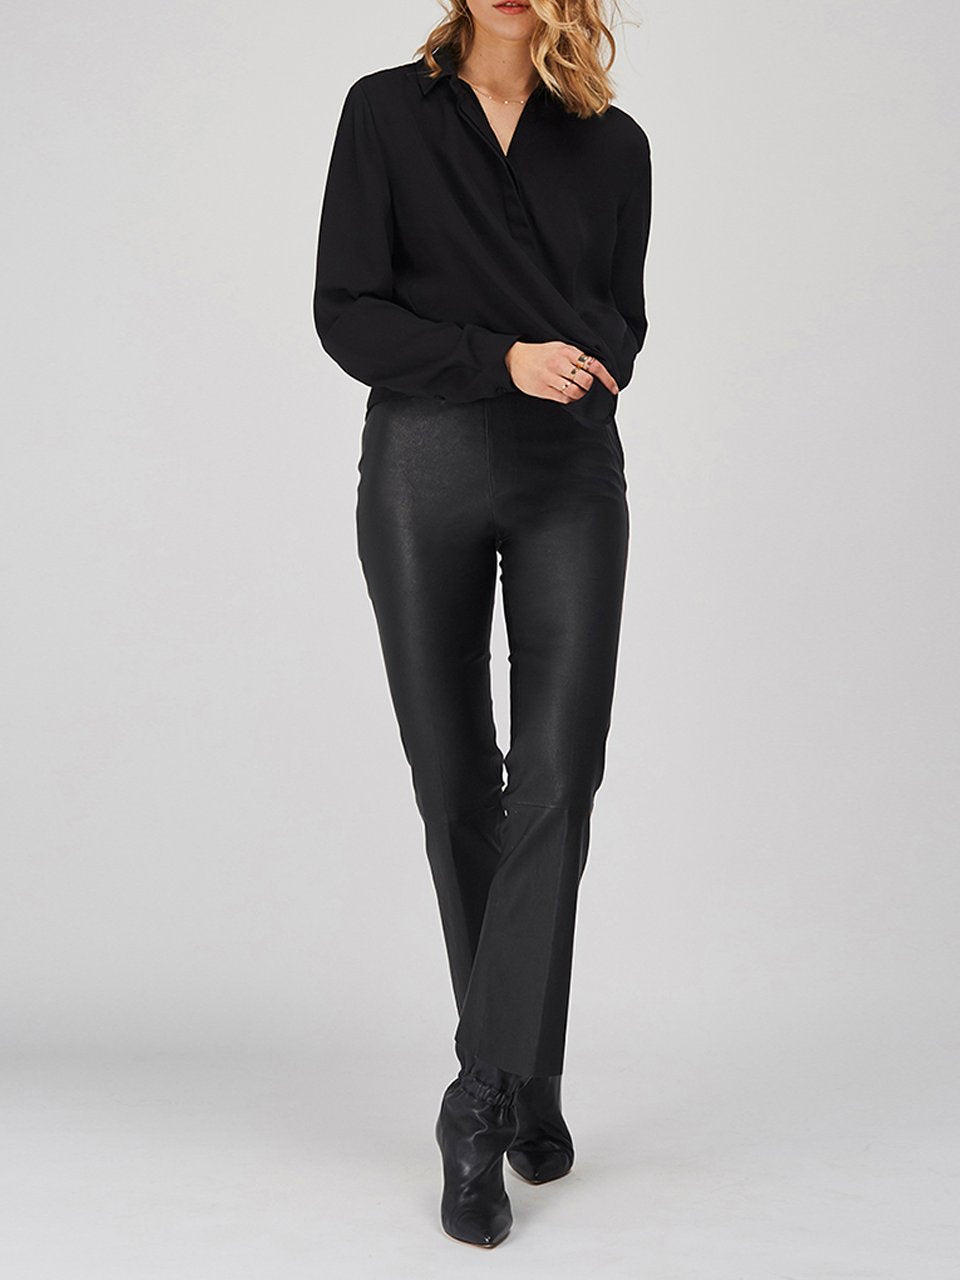 DANTE 6 TYSON CROP FLARE LEATHER PANTS